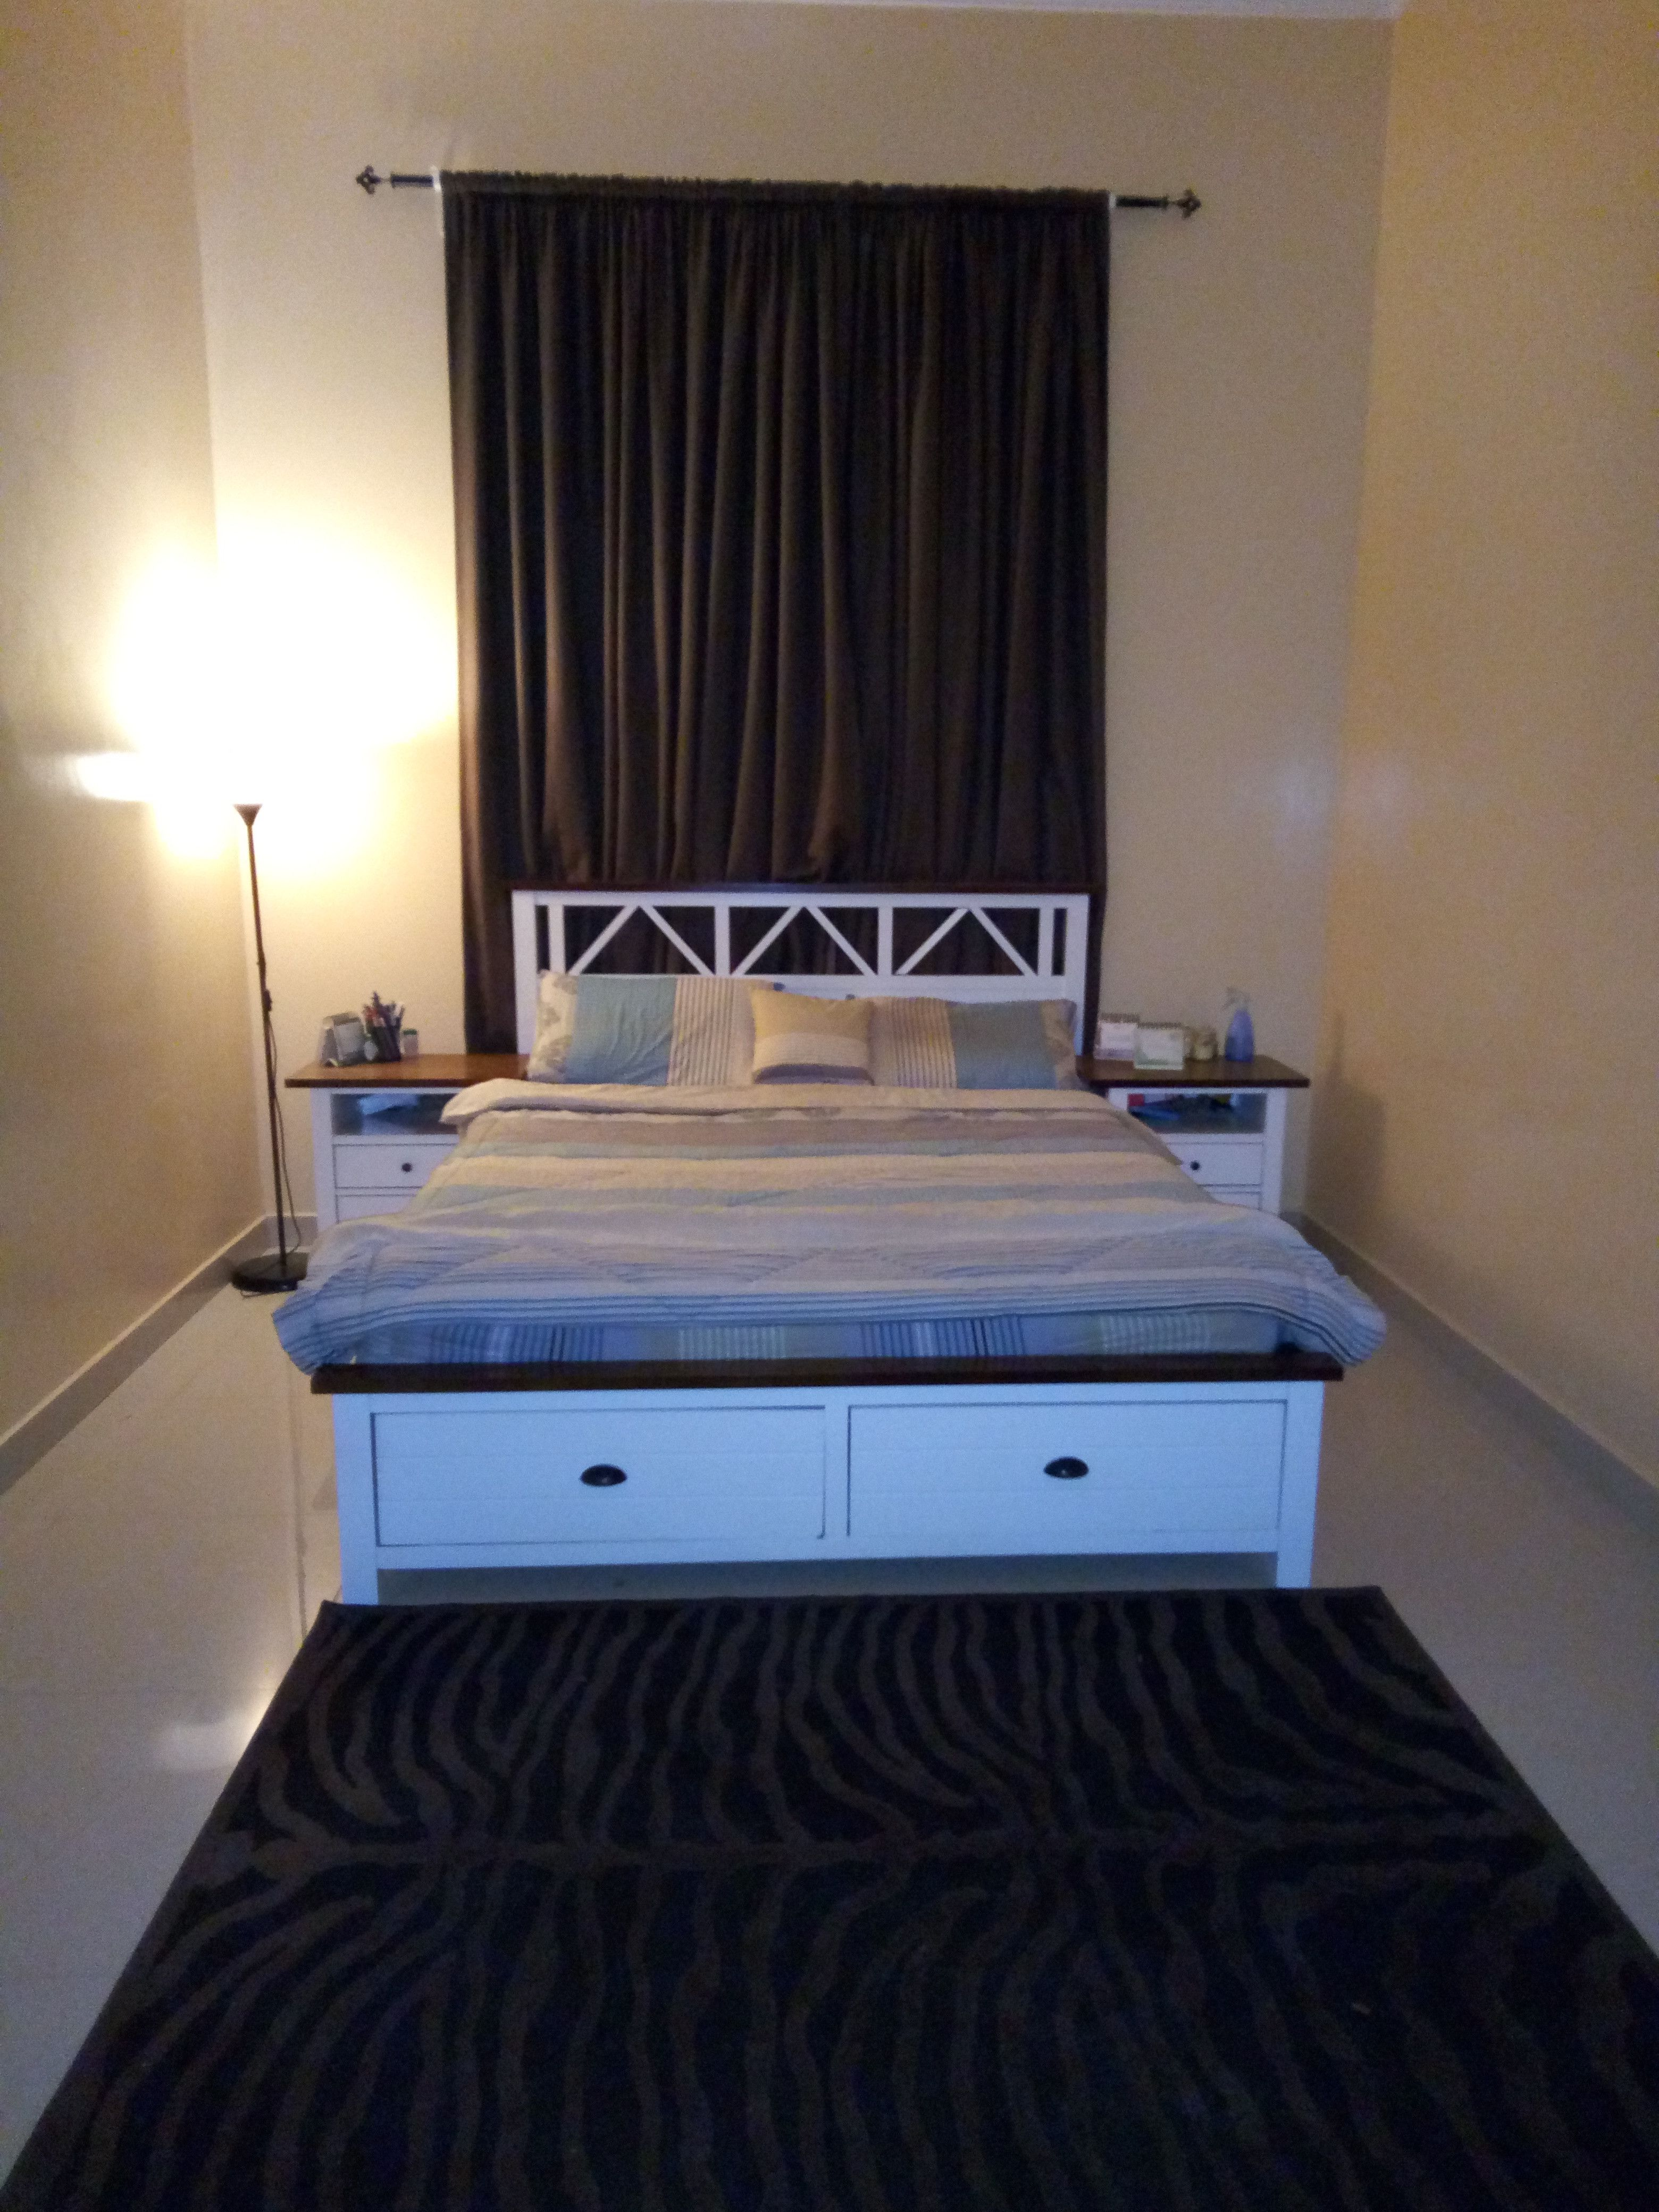 A Very Good Condition Bed Set For Urgent Sale From Pan Emirates In Abu Dhabi Abu Dhabi Uae